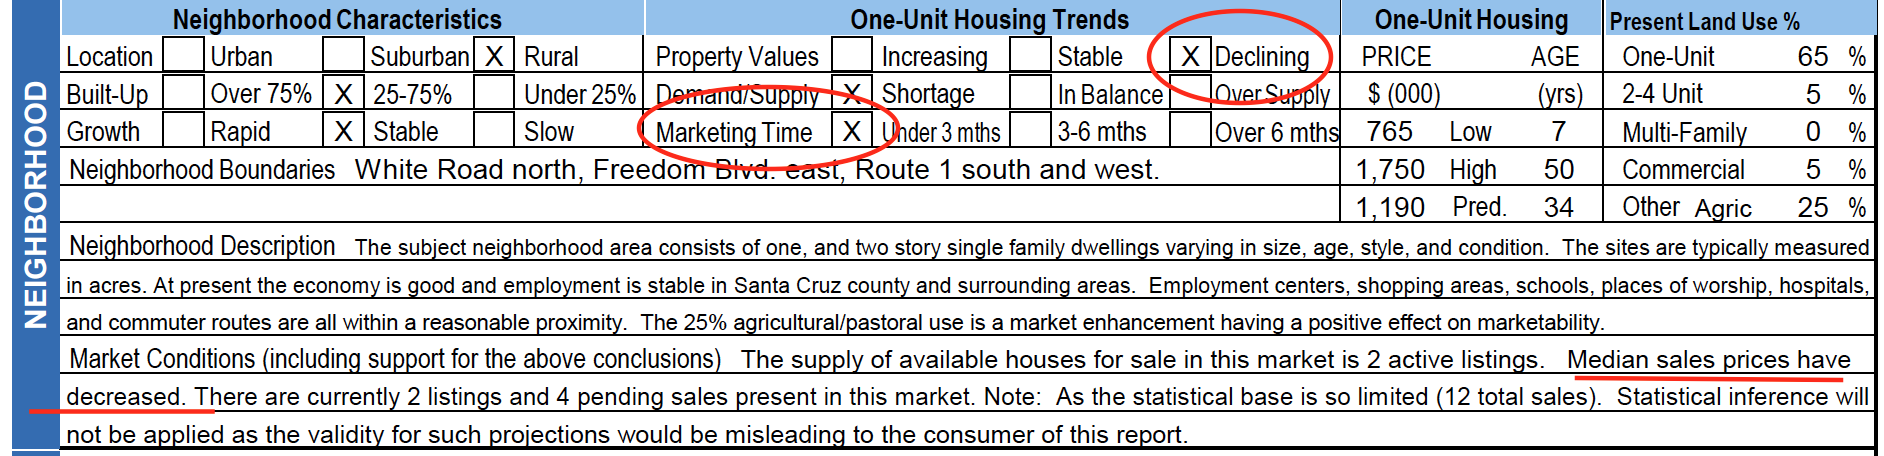 (Excerpt from a recent appraisal report for a home near La Selva Beach)